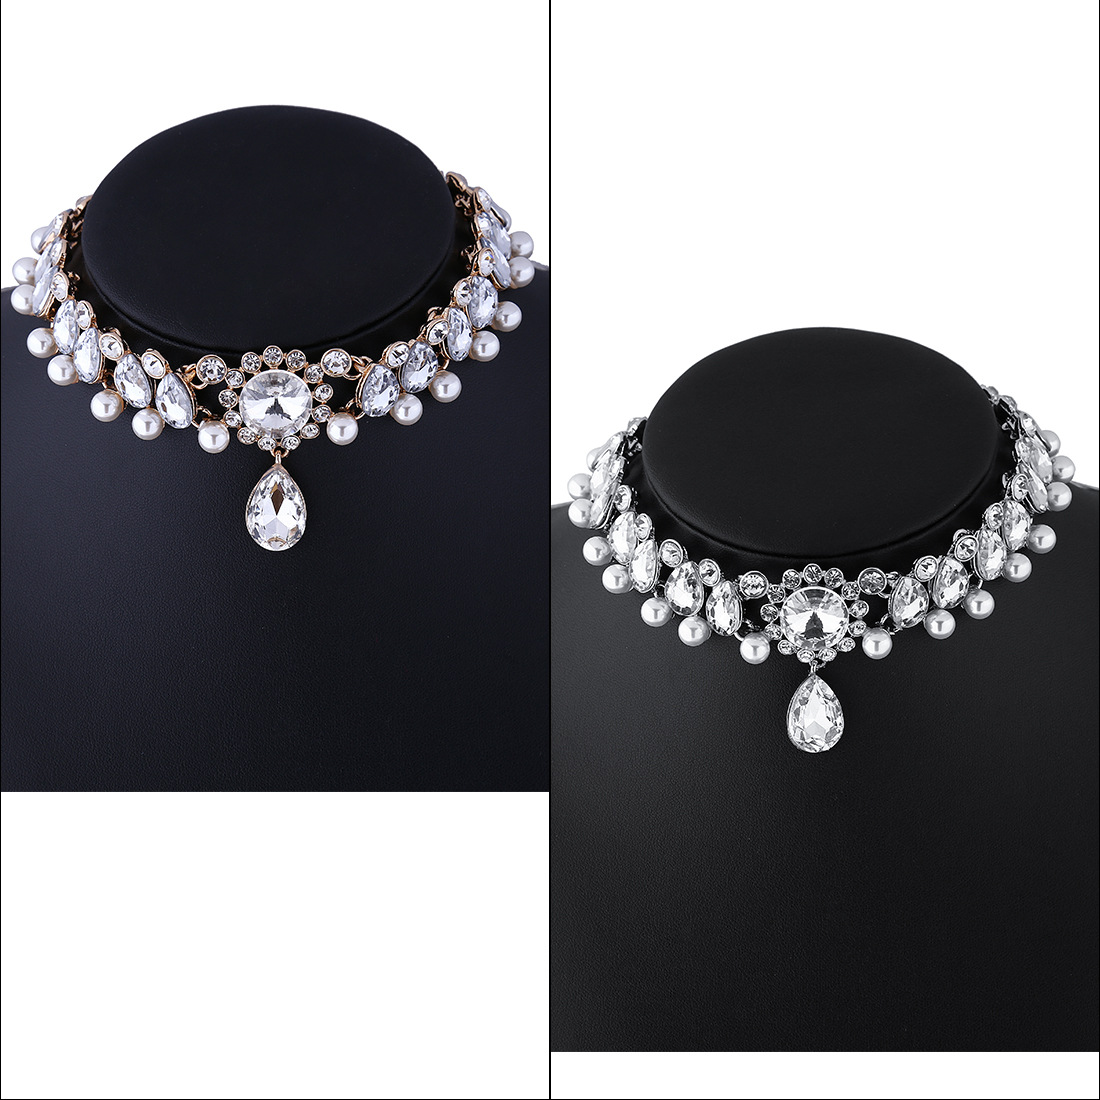 Jewdy Boho Collar Choker Water Drop Crystal Rhinestone pendant Necklace for women Vintage Simulated Pearl Statement Maxi Jewelry 3